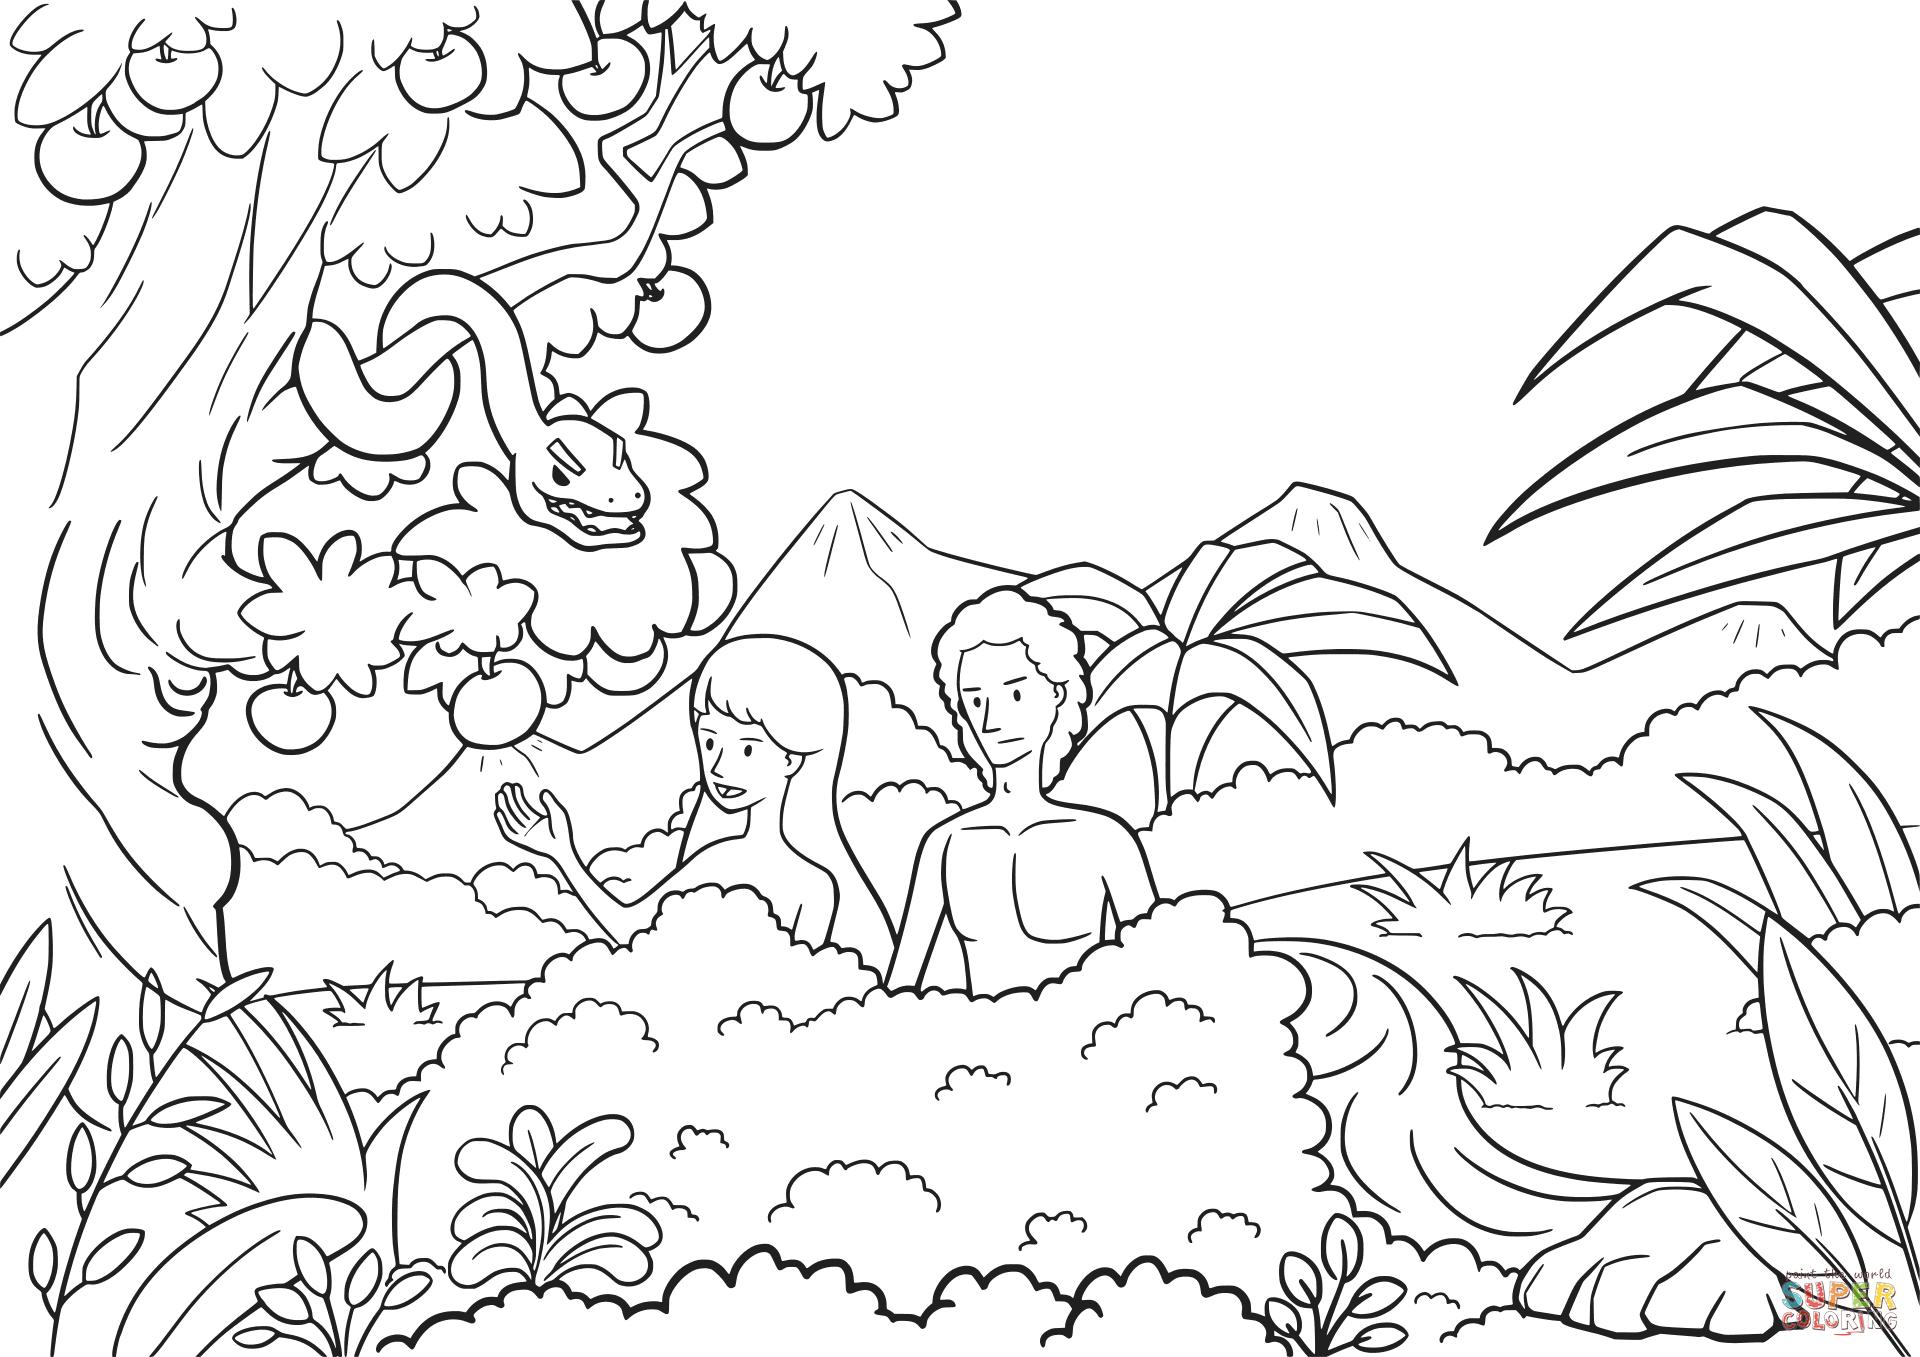 1920x1357 Wonderful Garden Of Eden Coloring Page Adam And Eve In The Pages